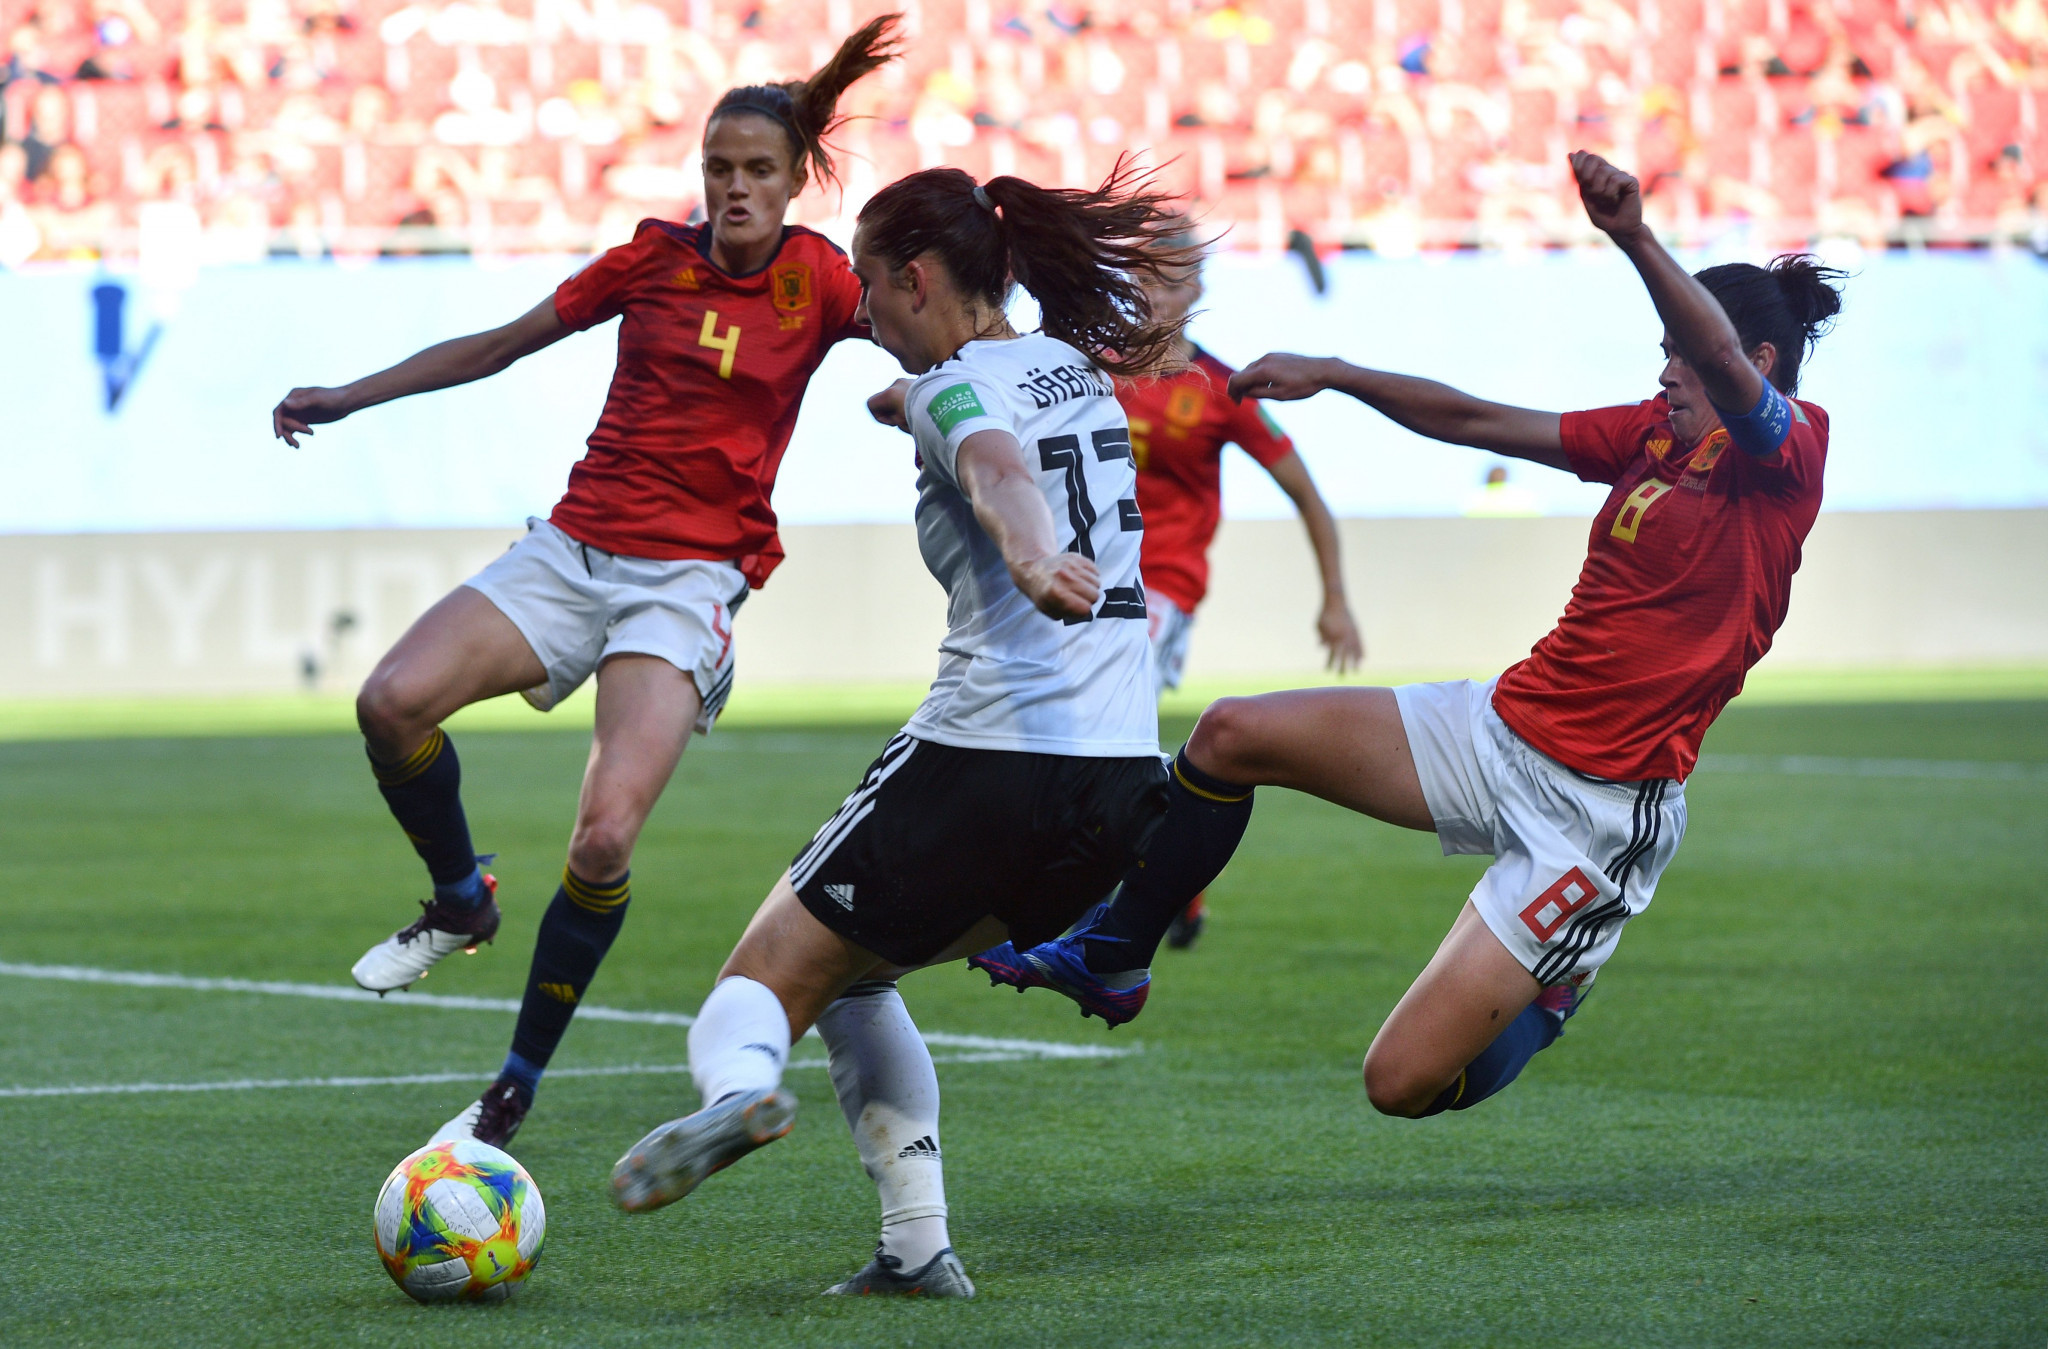 Germany's Sara Daebritz scored the solitary goal in her side's 1-0 win against Spain at the FIFA Women's World Cup ©Getty Images